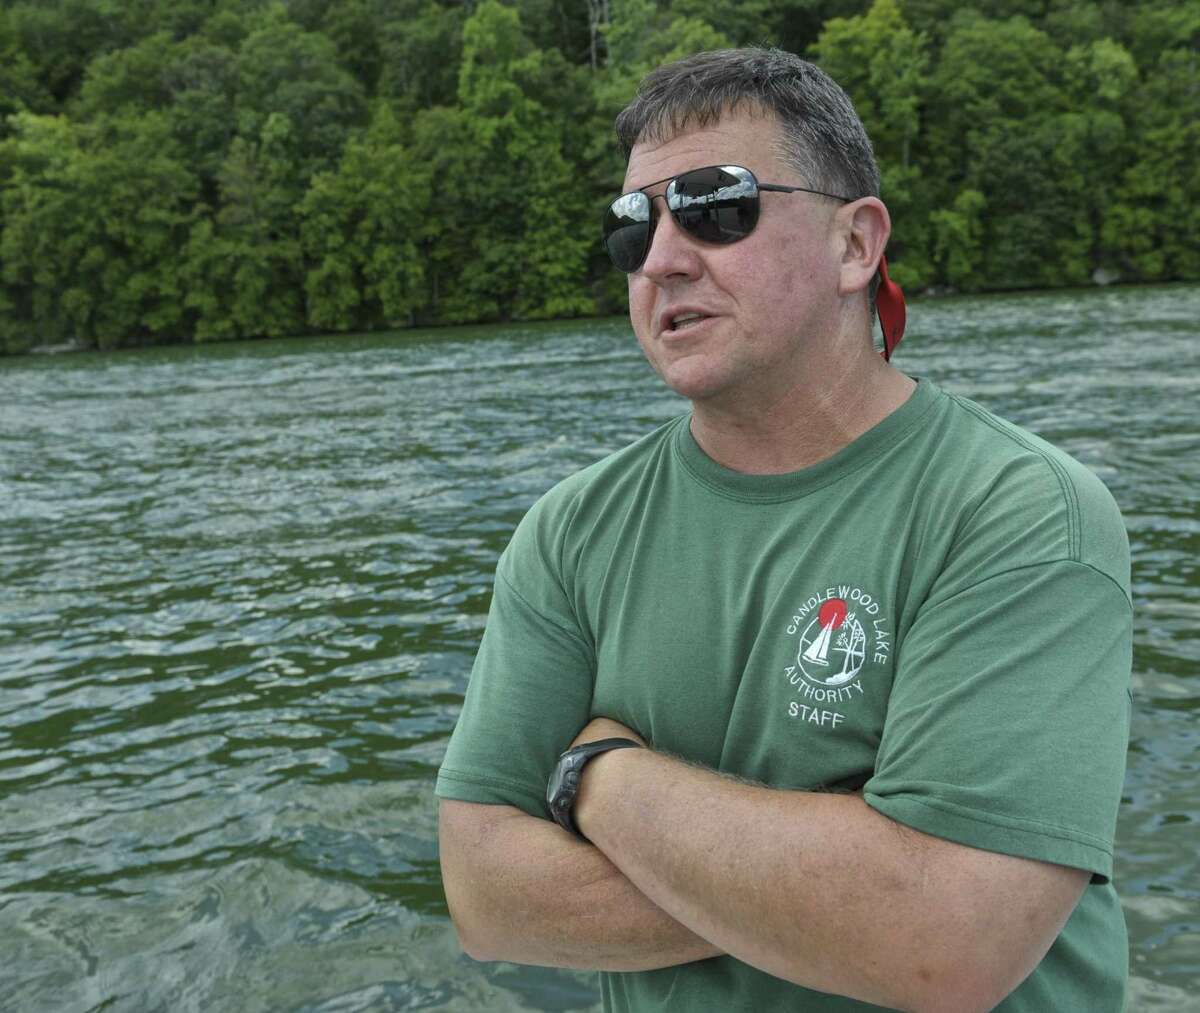 Larry Marsicano, the Executive Director of the Candlewood Lake Authority was on Candlewood Lake.